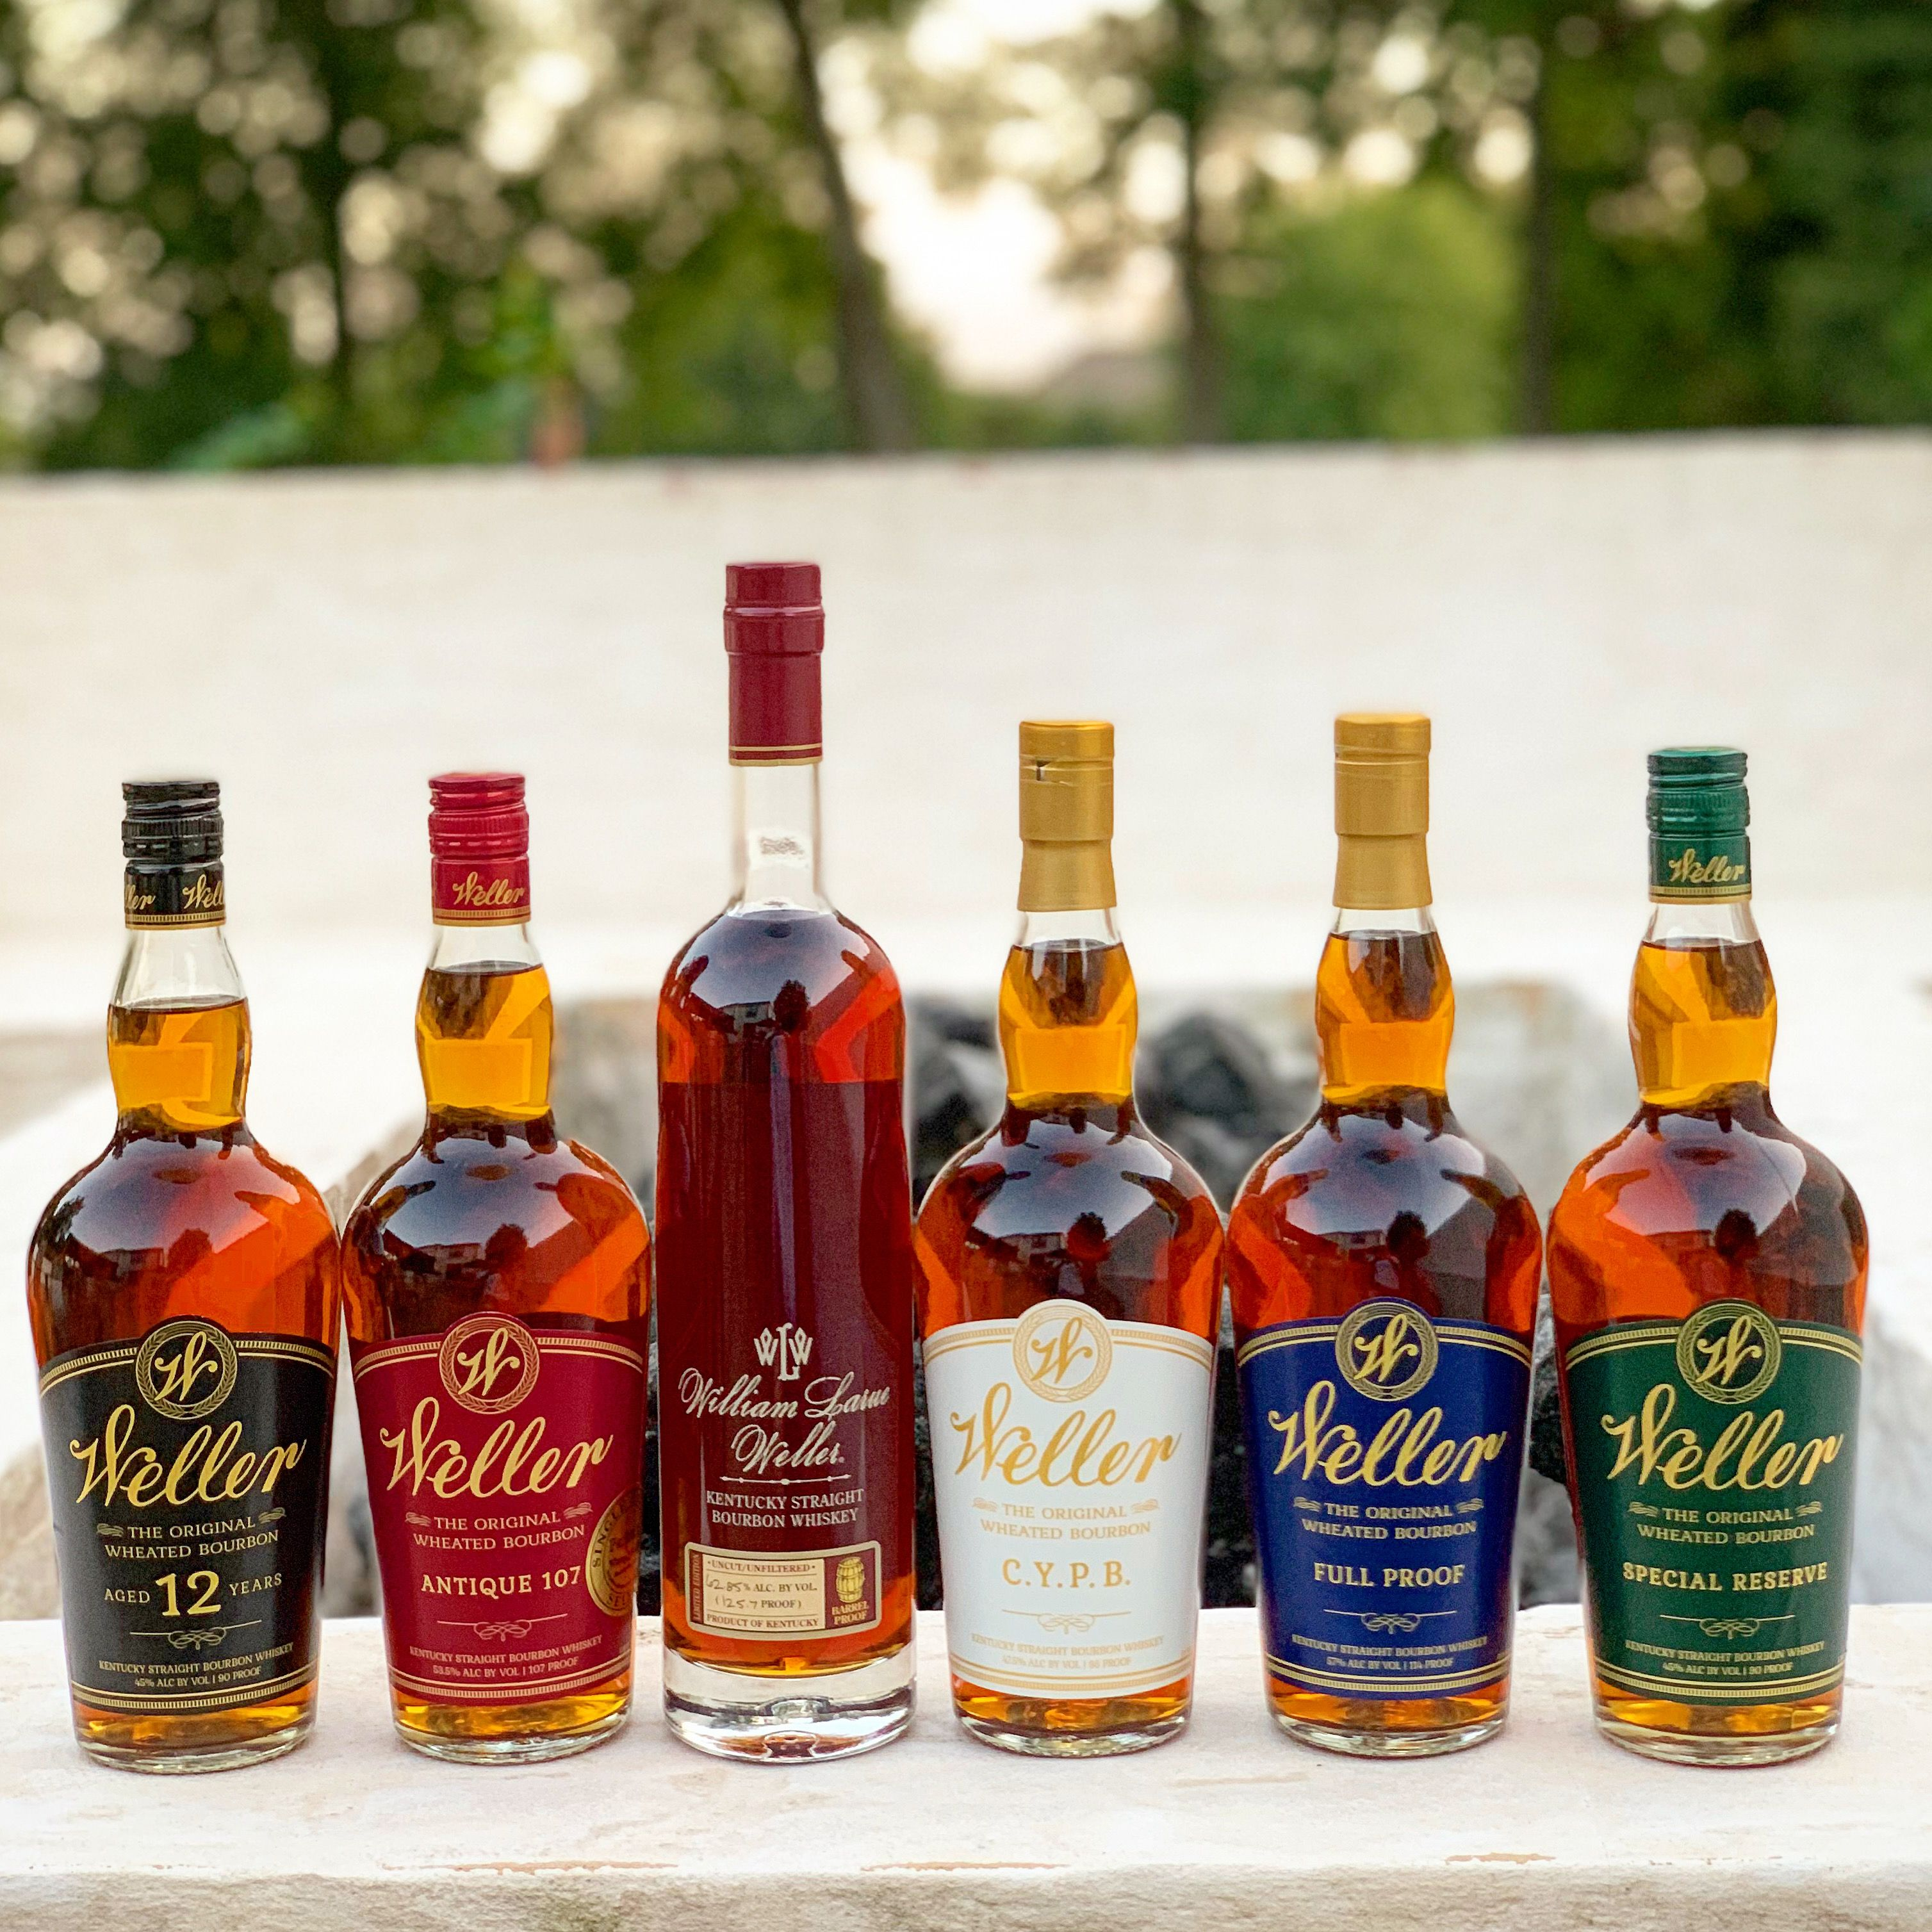 The Ultimate Weller Bourbon Collection Borrowed From Brothersinbourbon Instagram In 2020 Best Bourbon Whiskey Bourbon Liquor Weller Bourbon